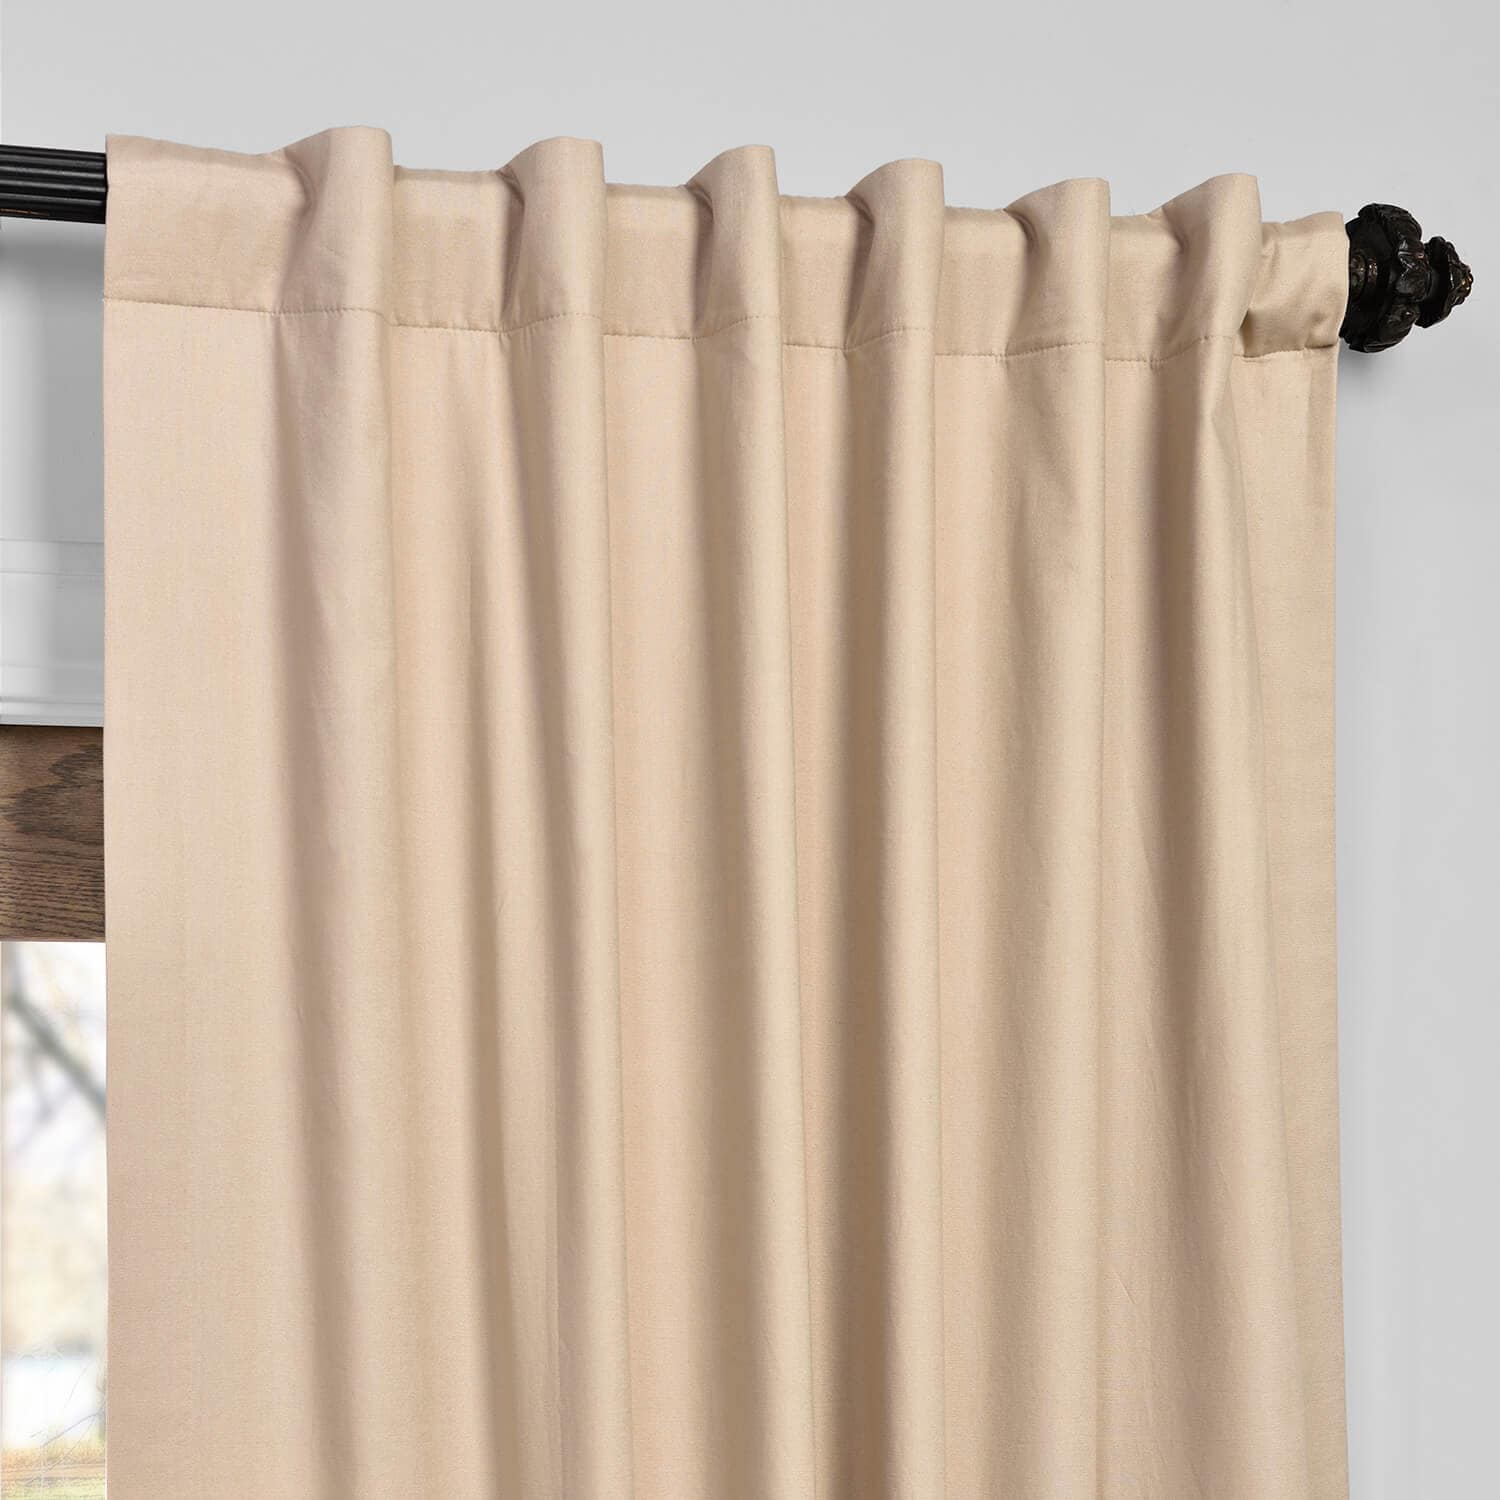 blackout fabrics exclusive seville on garden free inch over overstock curtain panel x curtains home orders shipping product grommet tan pair